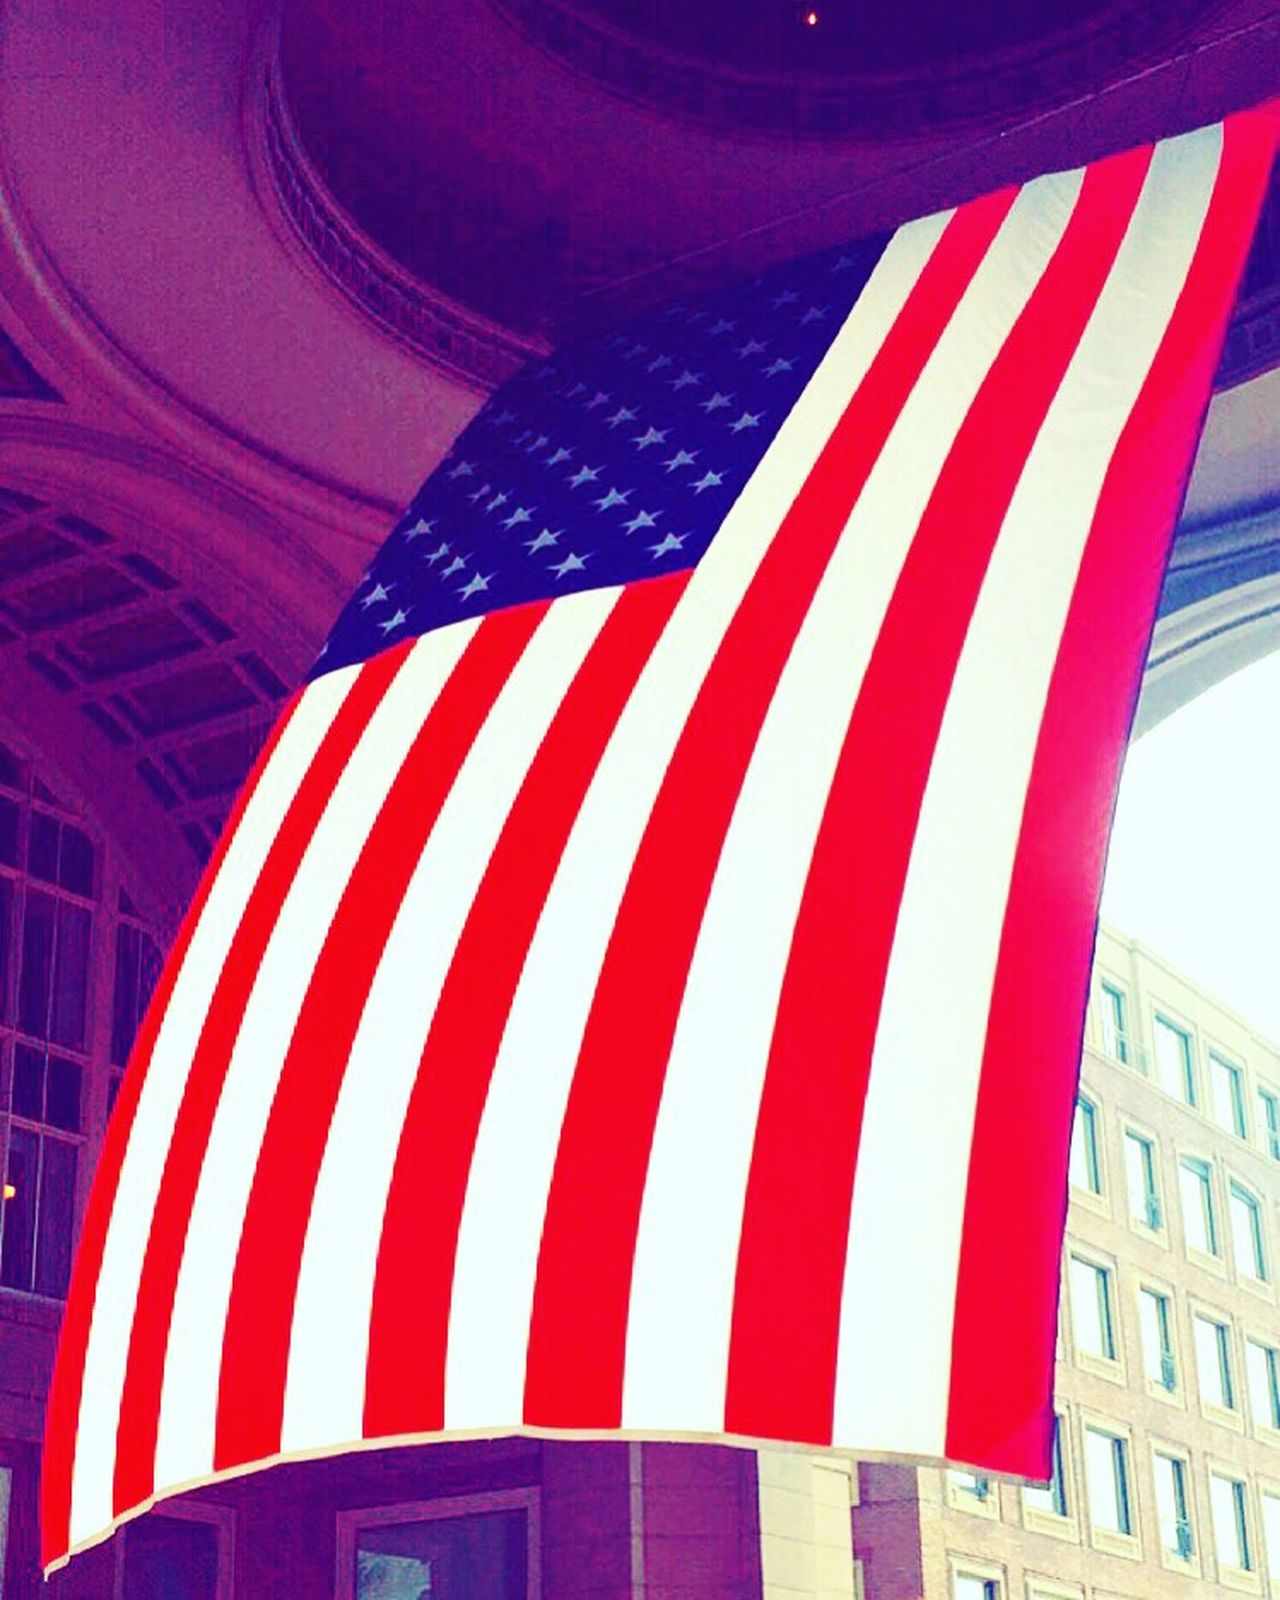 Happy Memorial Day! Check This Out American Flag USA BostonHarbor RowesWharf Waterfront Bostonharborhotel Boston Americanflag Red White & Blue Oldglory Fallenheroes Tribute Salute